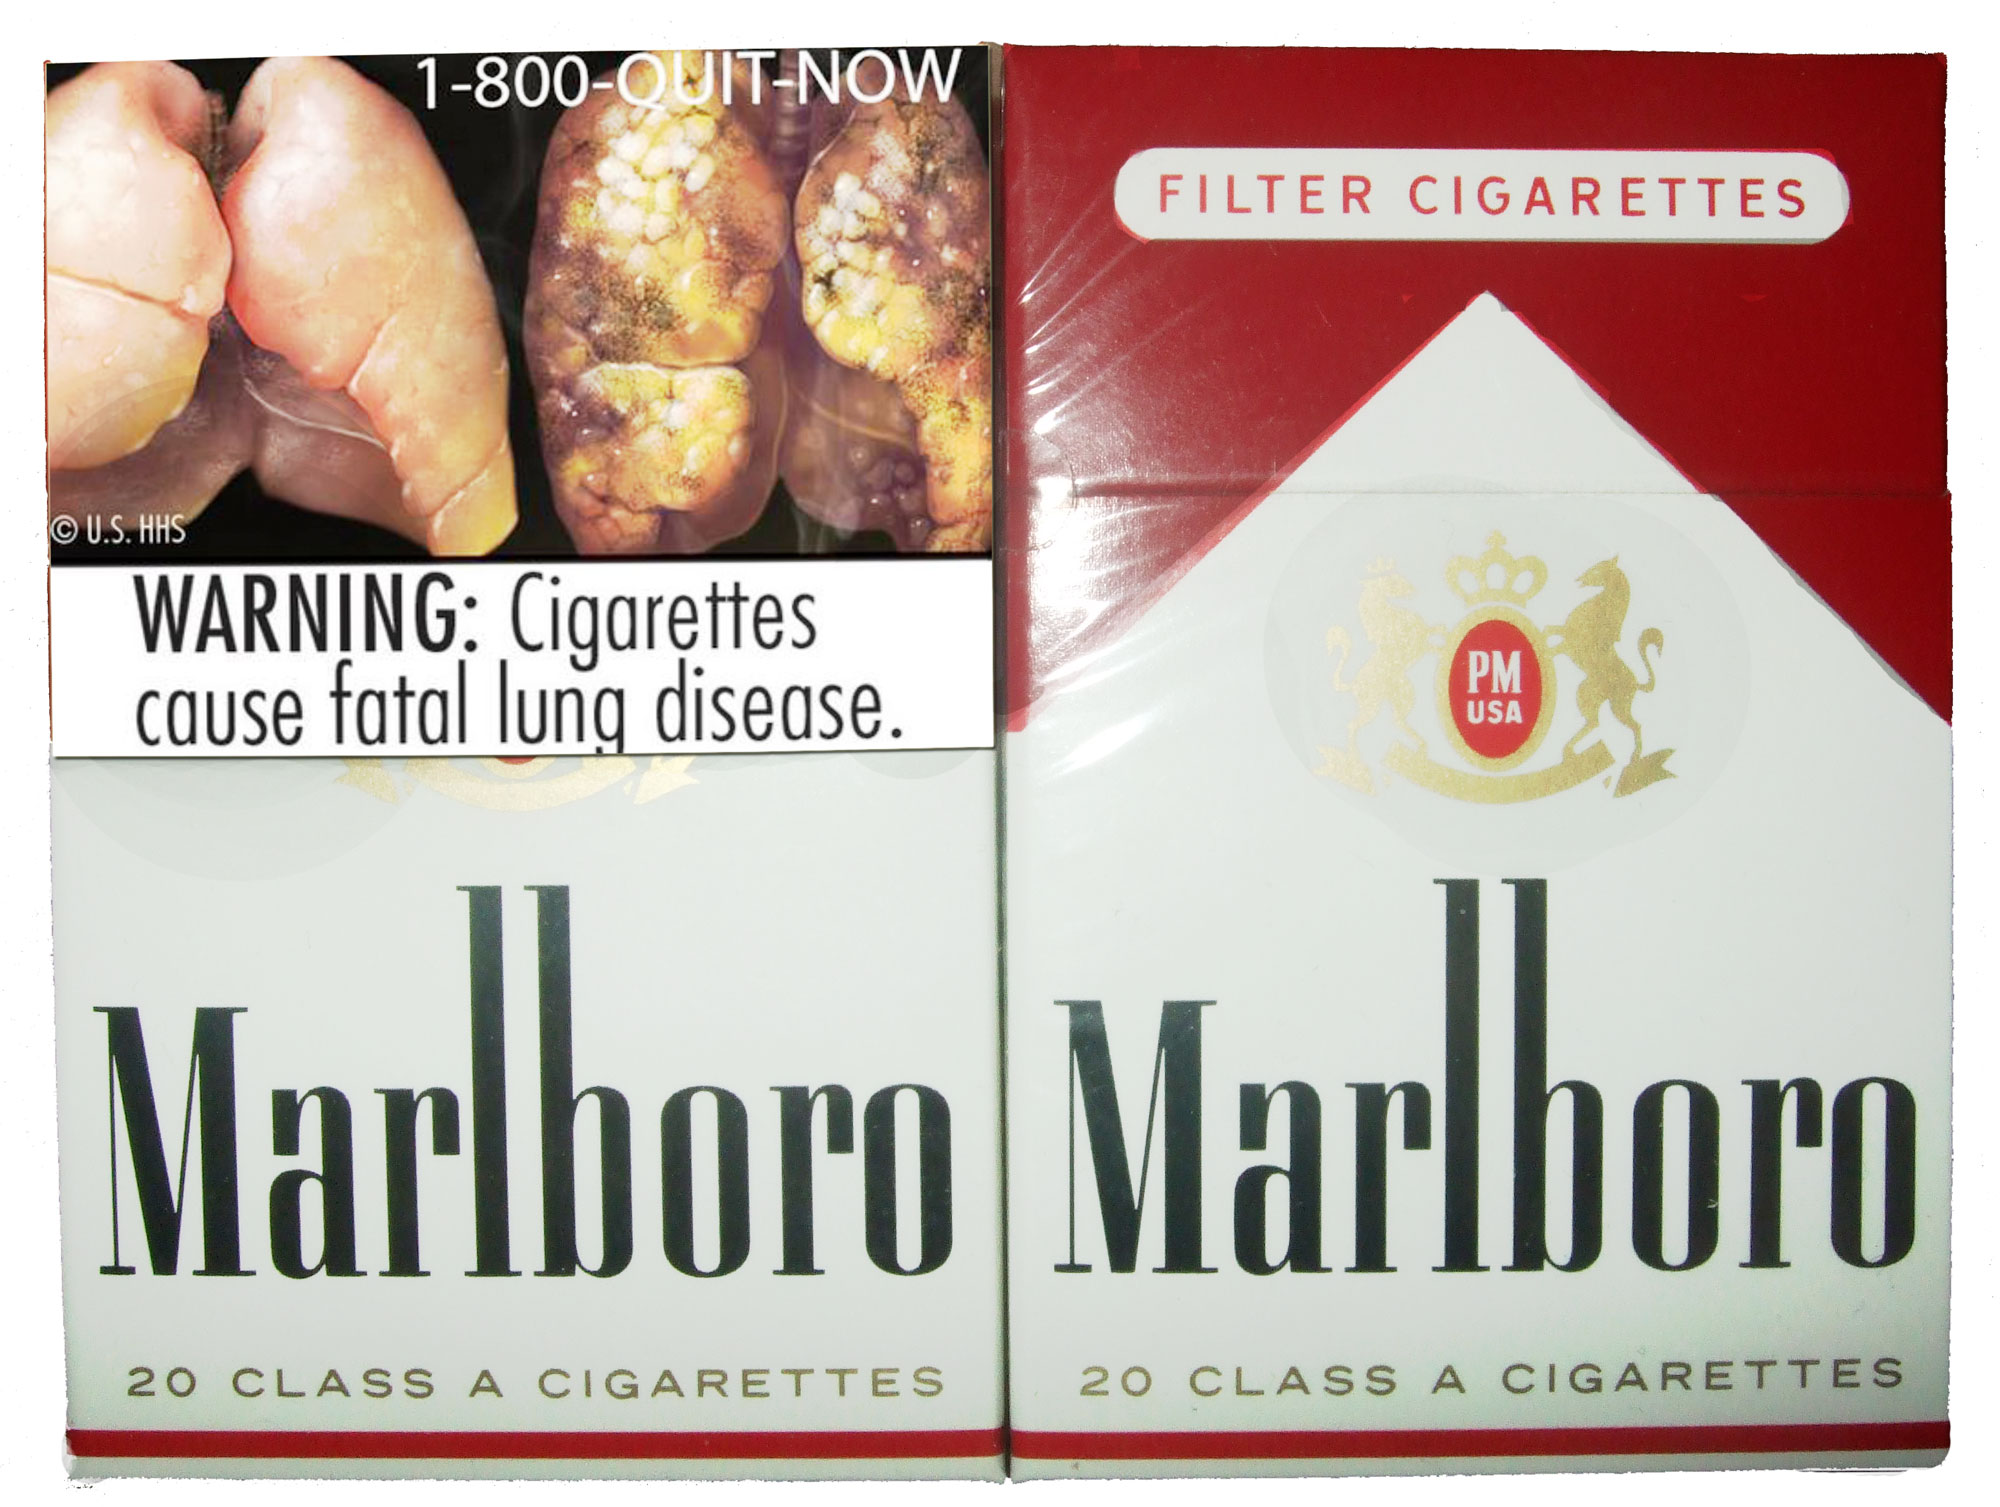 Study Suggests Smokers More Likely to Try Quitting and ...